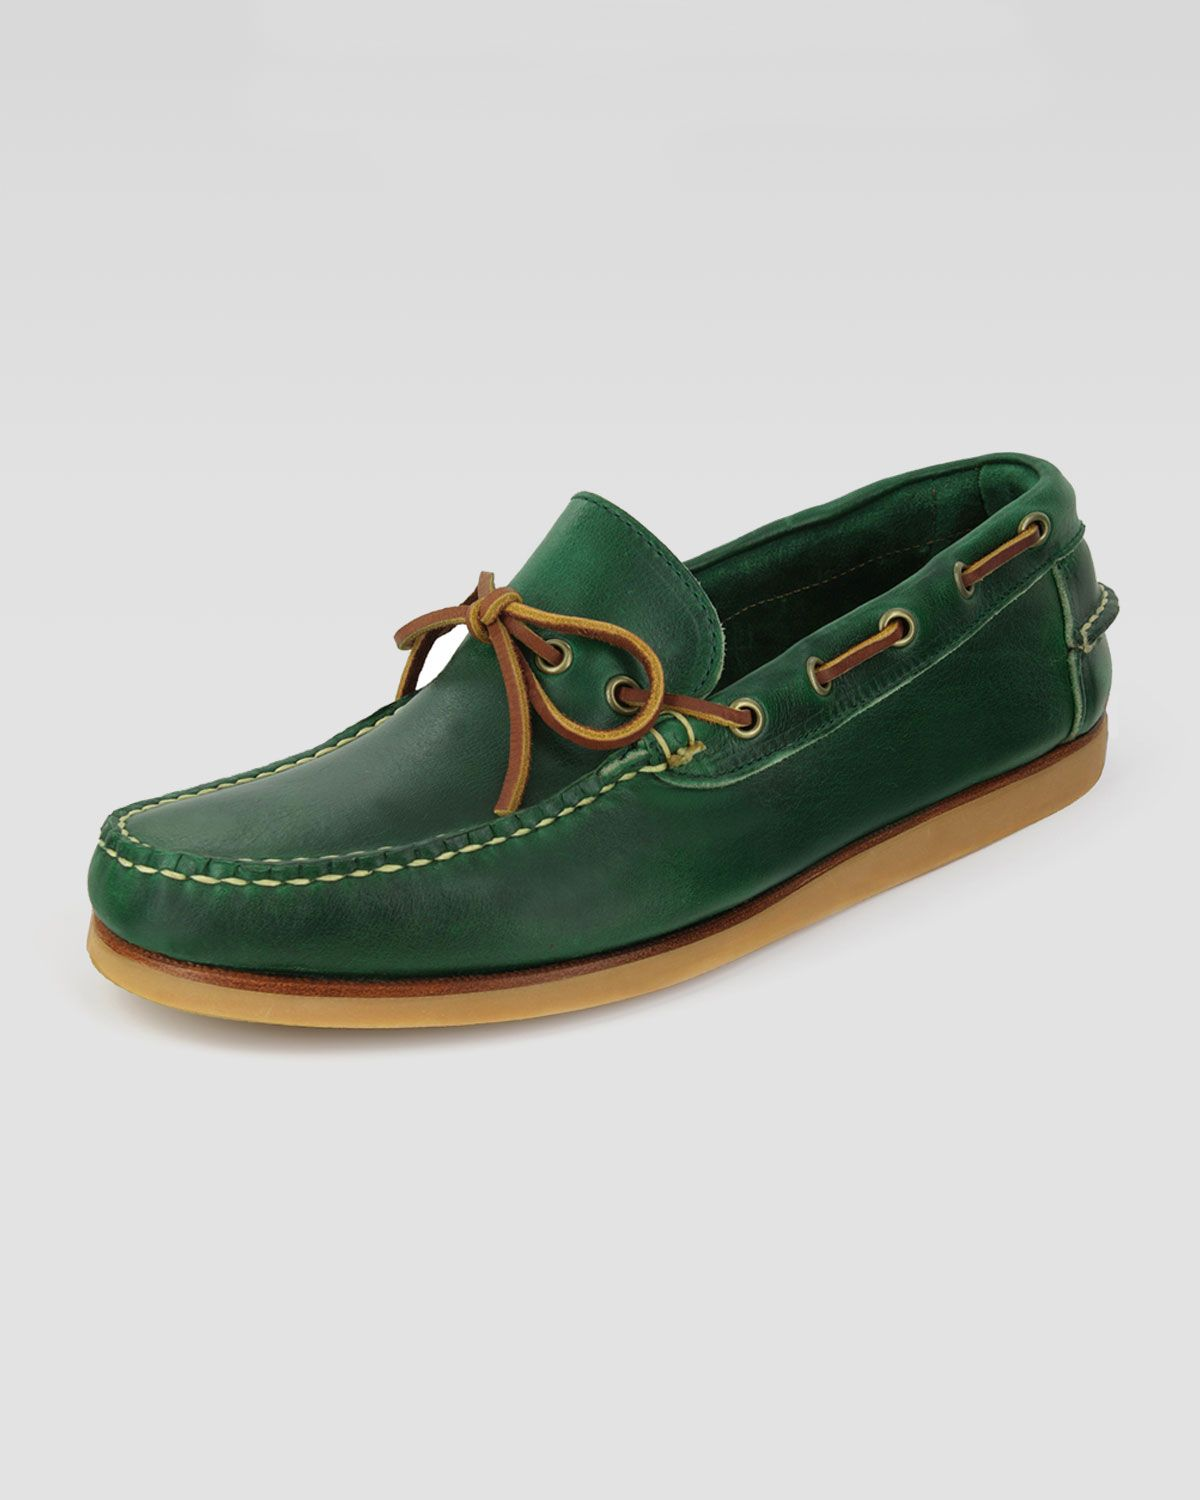 4e681be98f0d00 Discover ideas about Eastland Shoes. Eastland Made in Maine Yarmouth Boat  ...